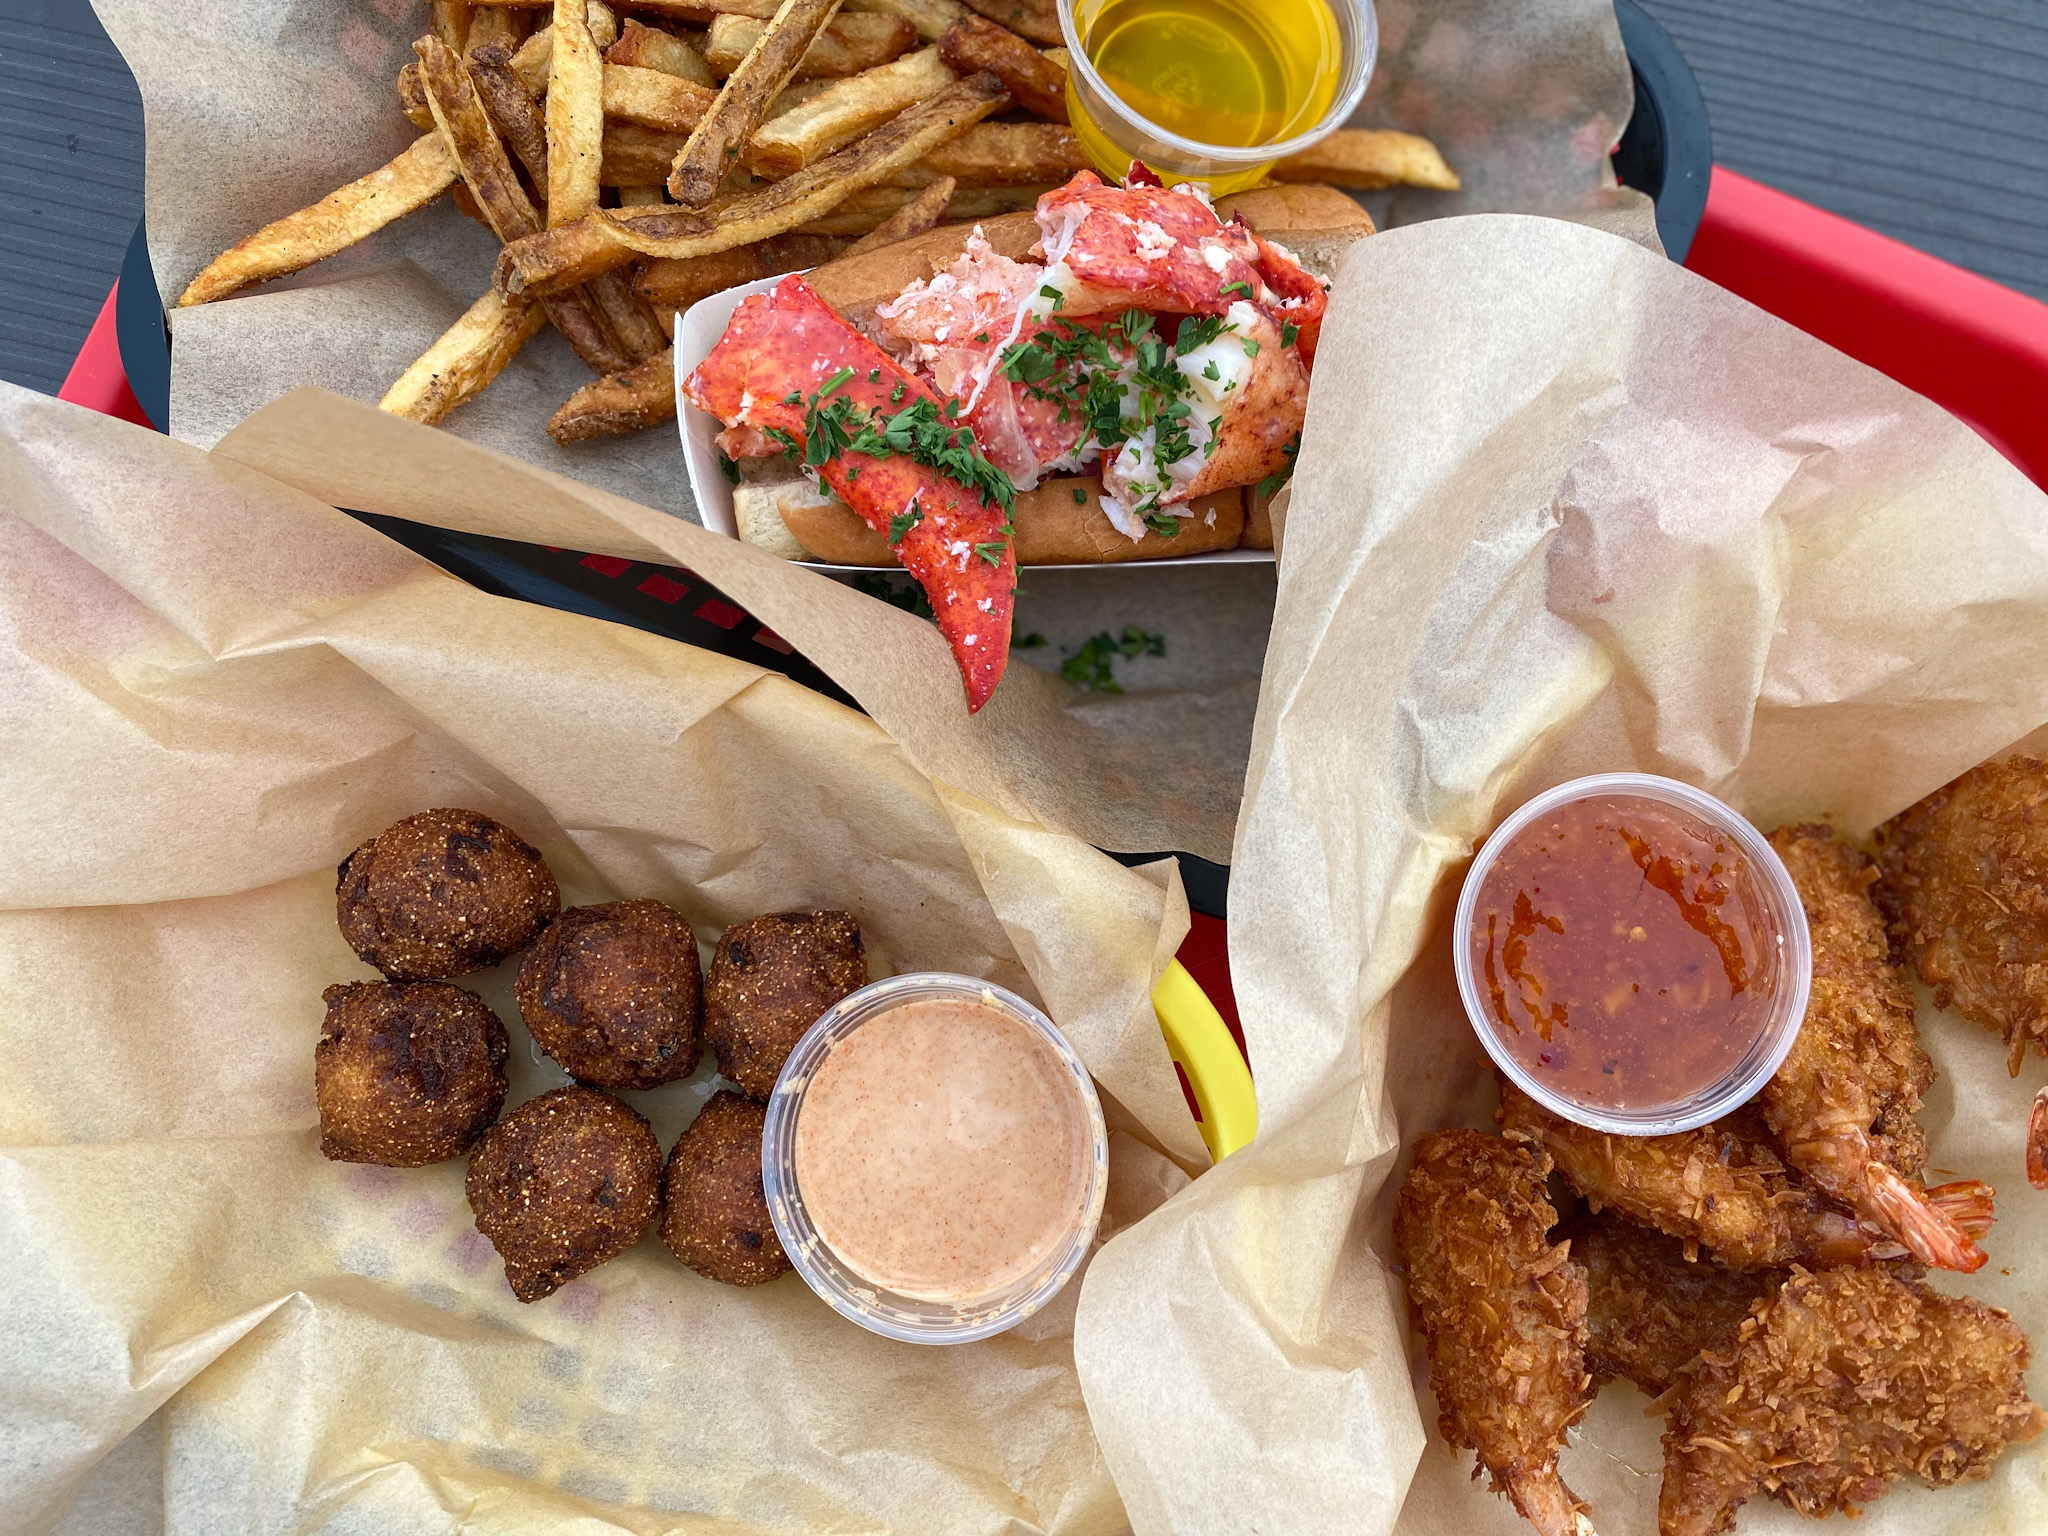 Coconut Shrimp, Lobster Roll and the Hush Puppies